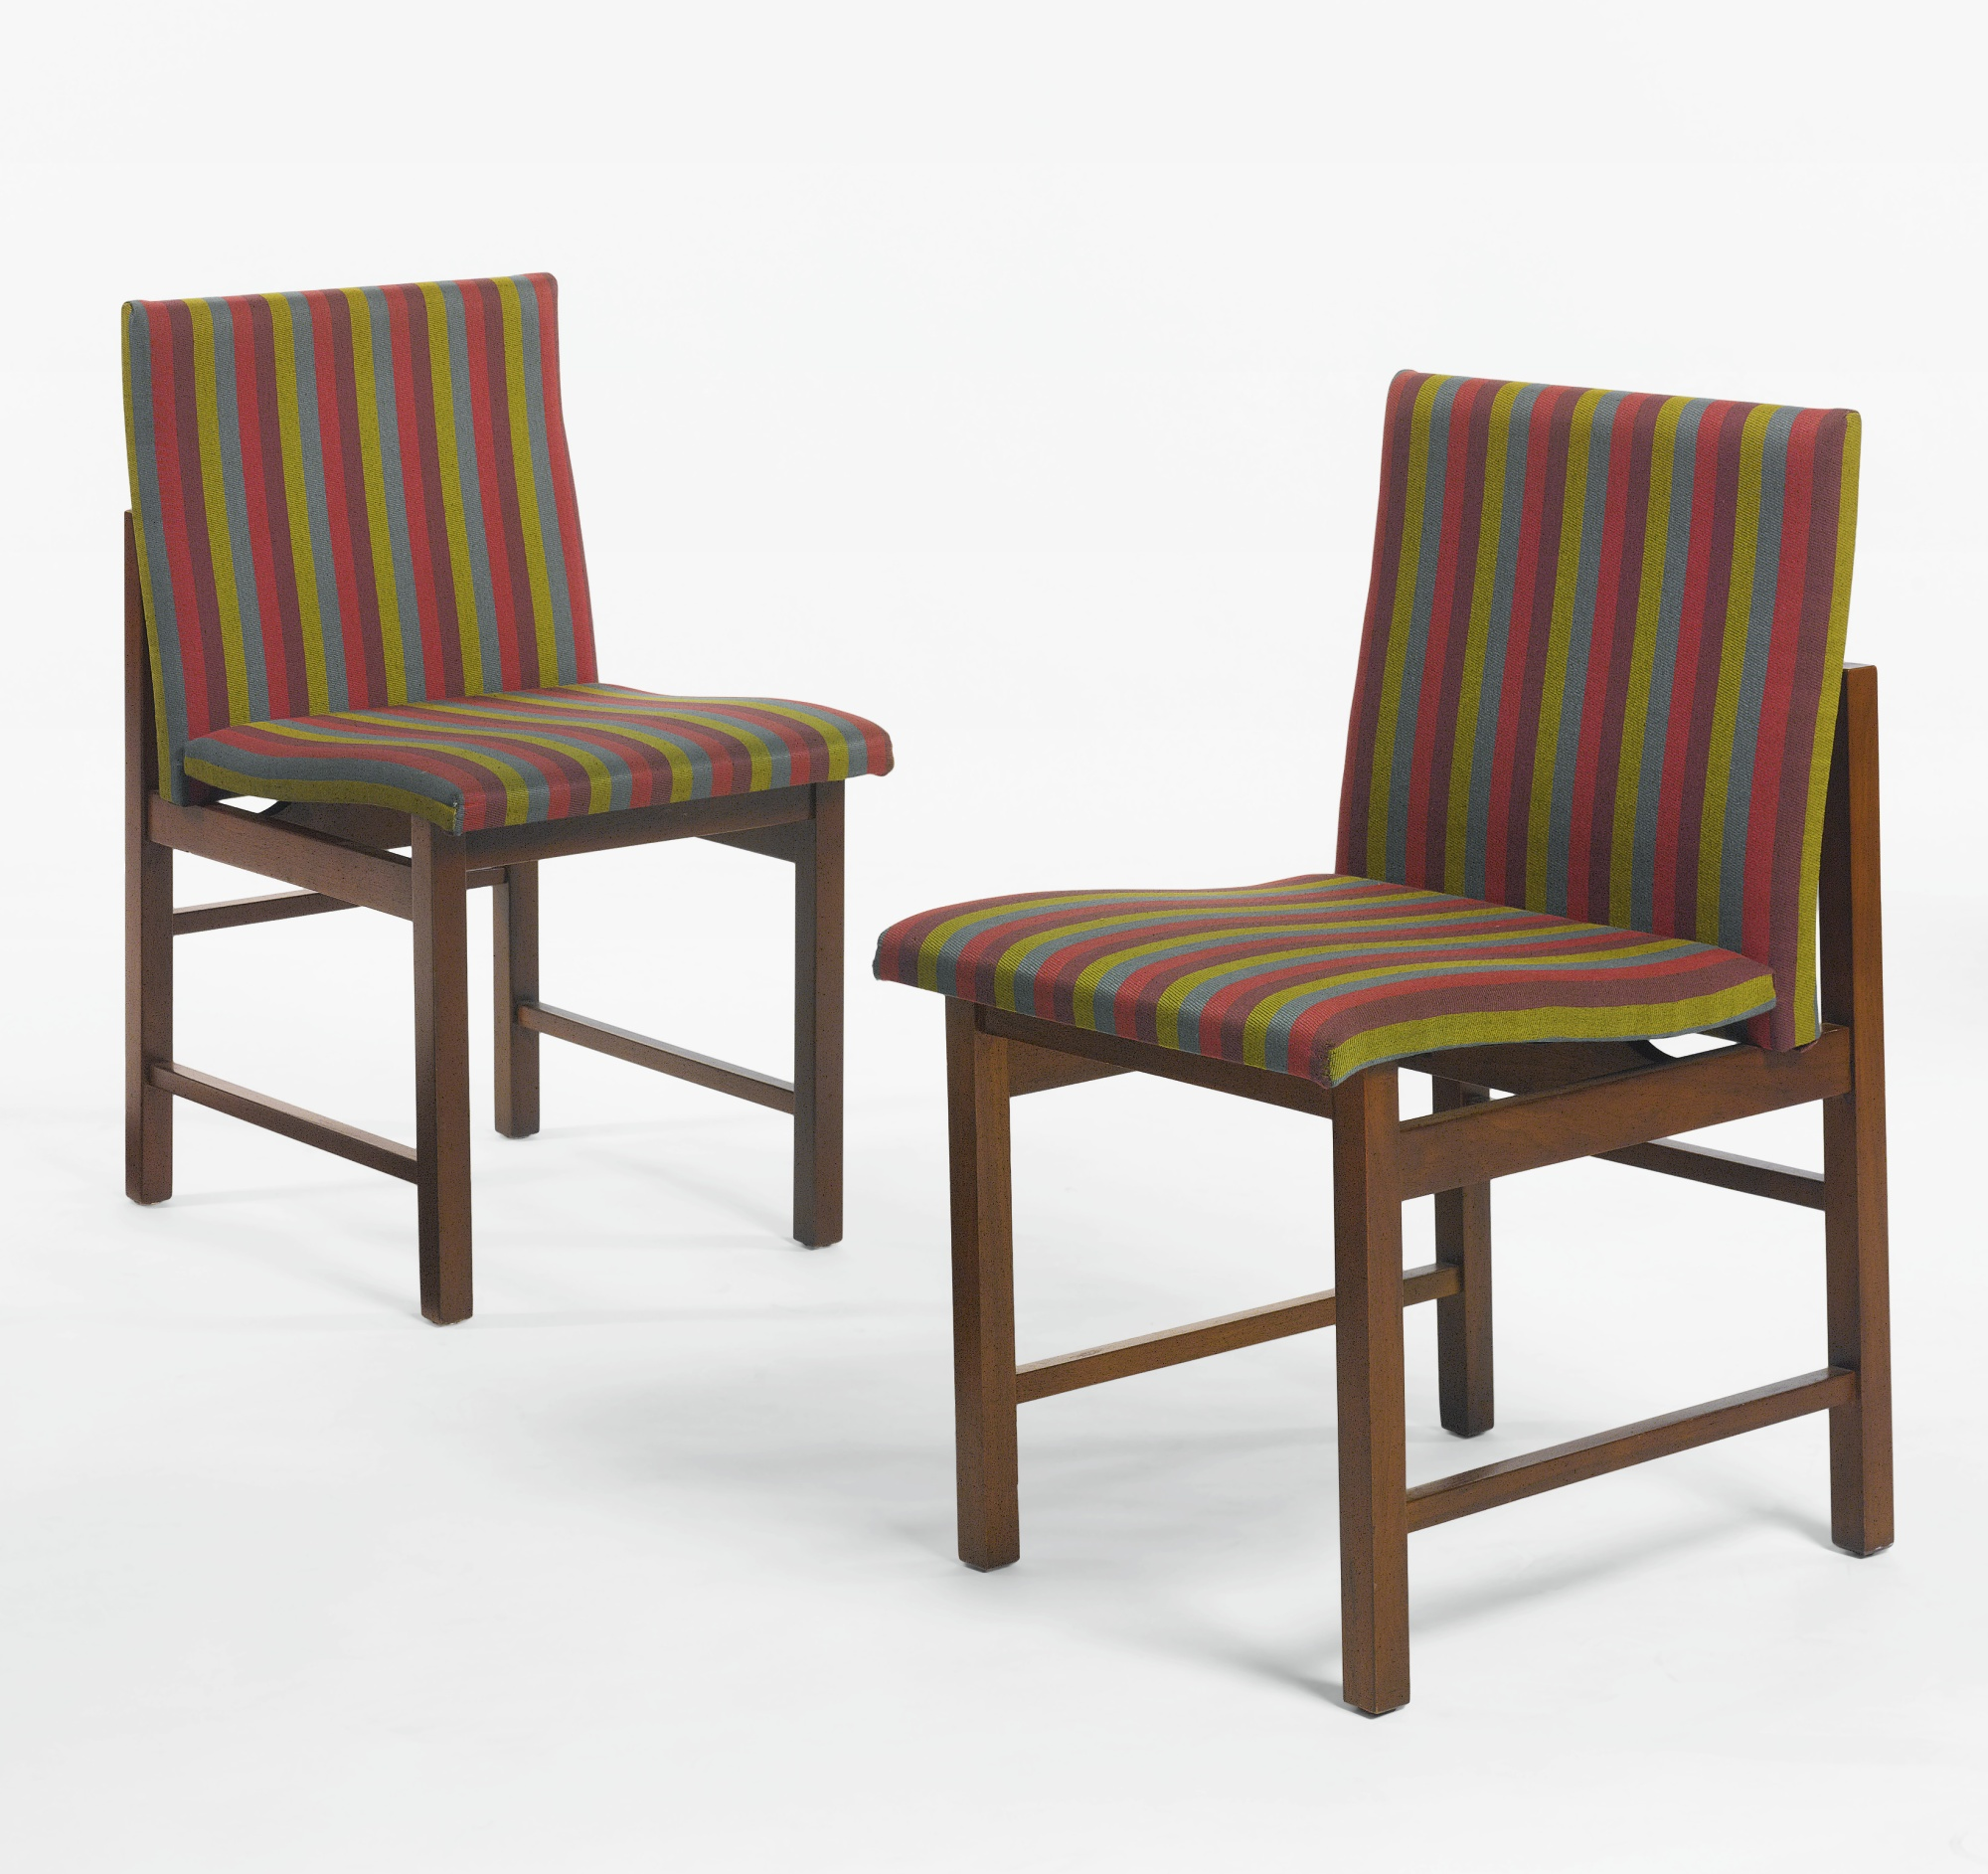 Greta Magnusson Grossman - Pair Of Chairs-1954